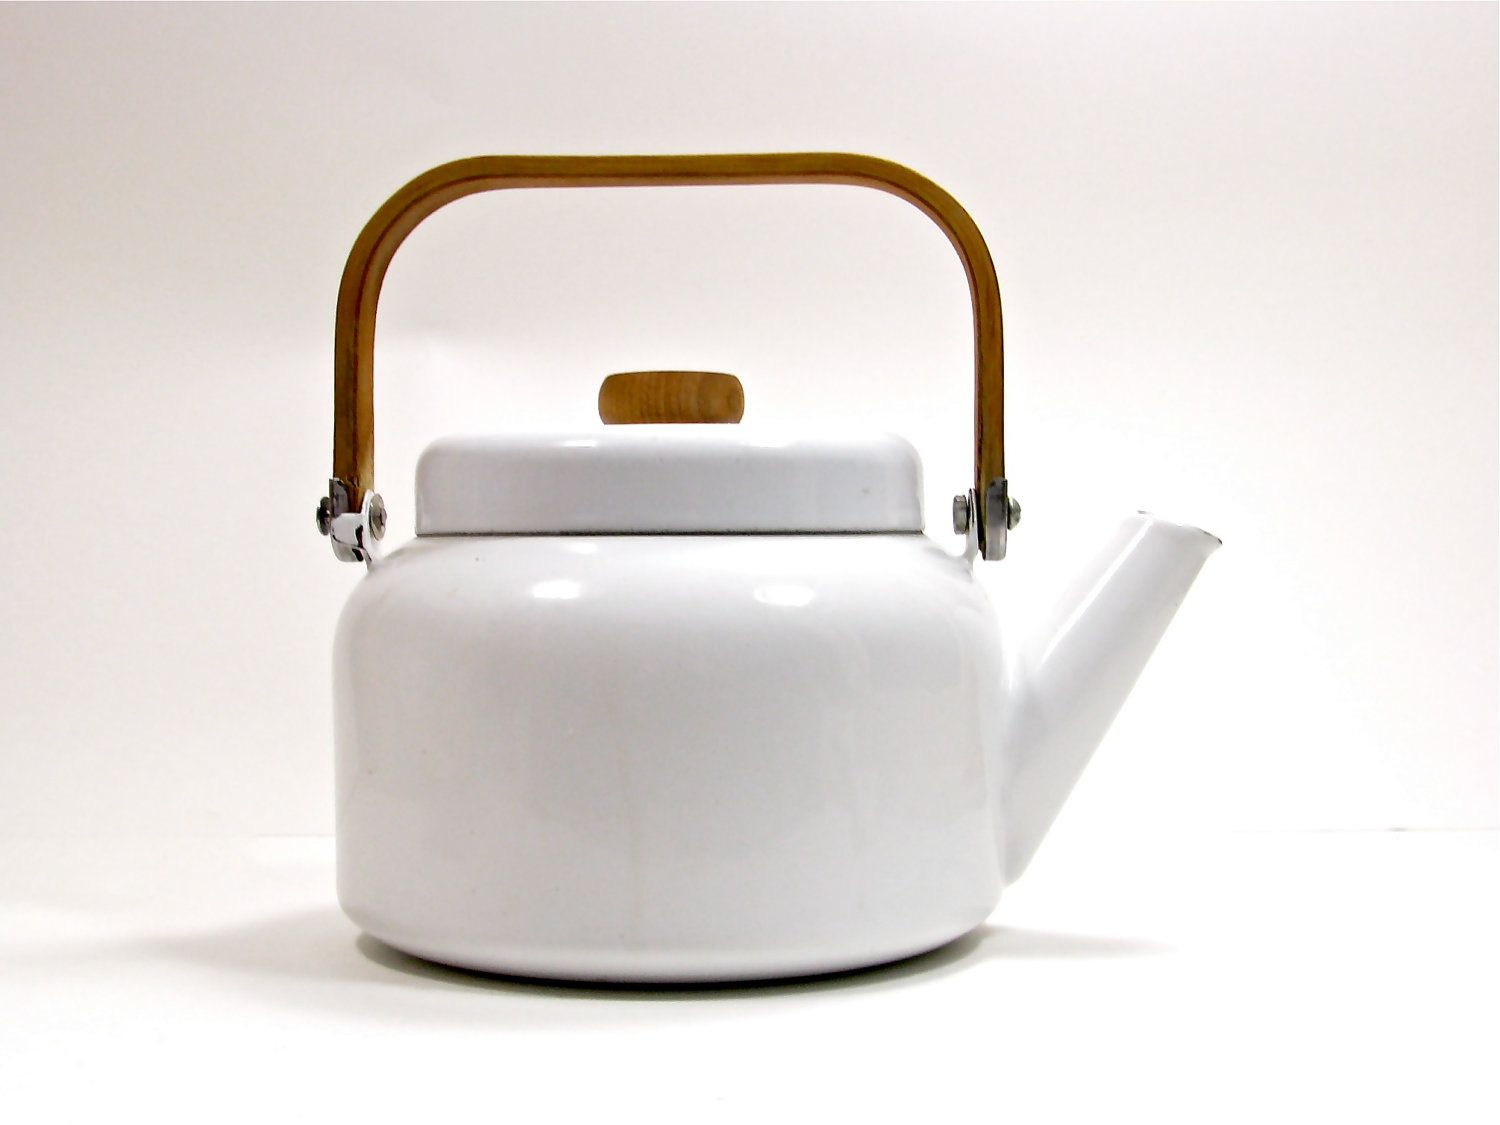 Vintage Enamel Kitchen Kettle White With Wood Handle Reserved Modern Kettles Kettle Traditional Teapots